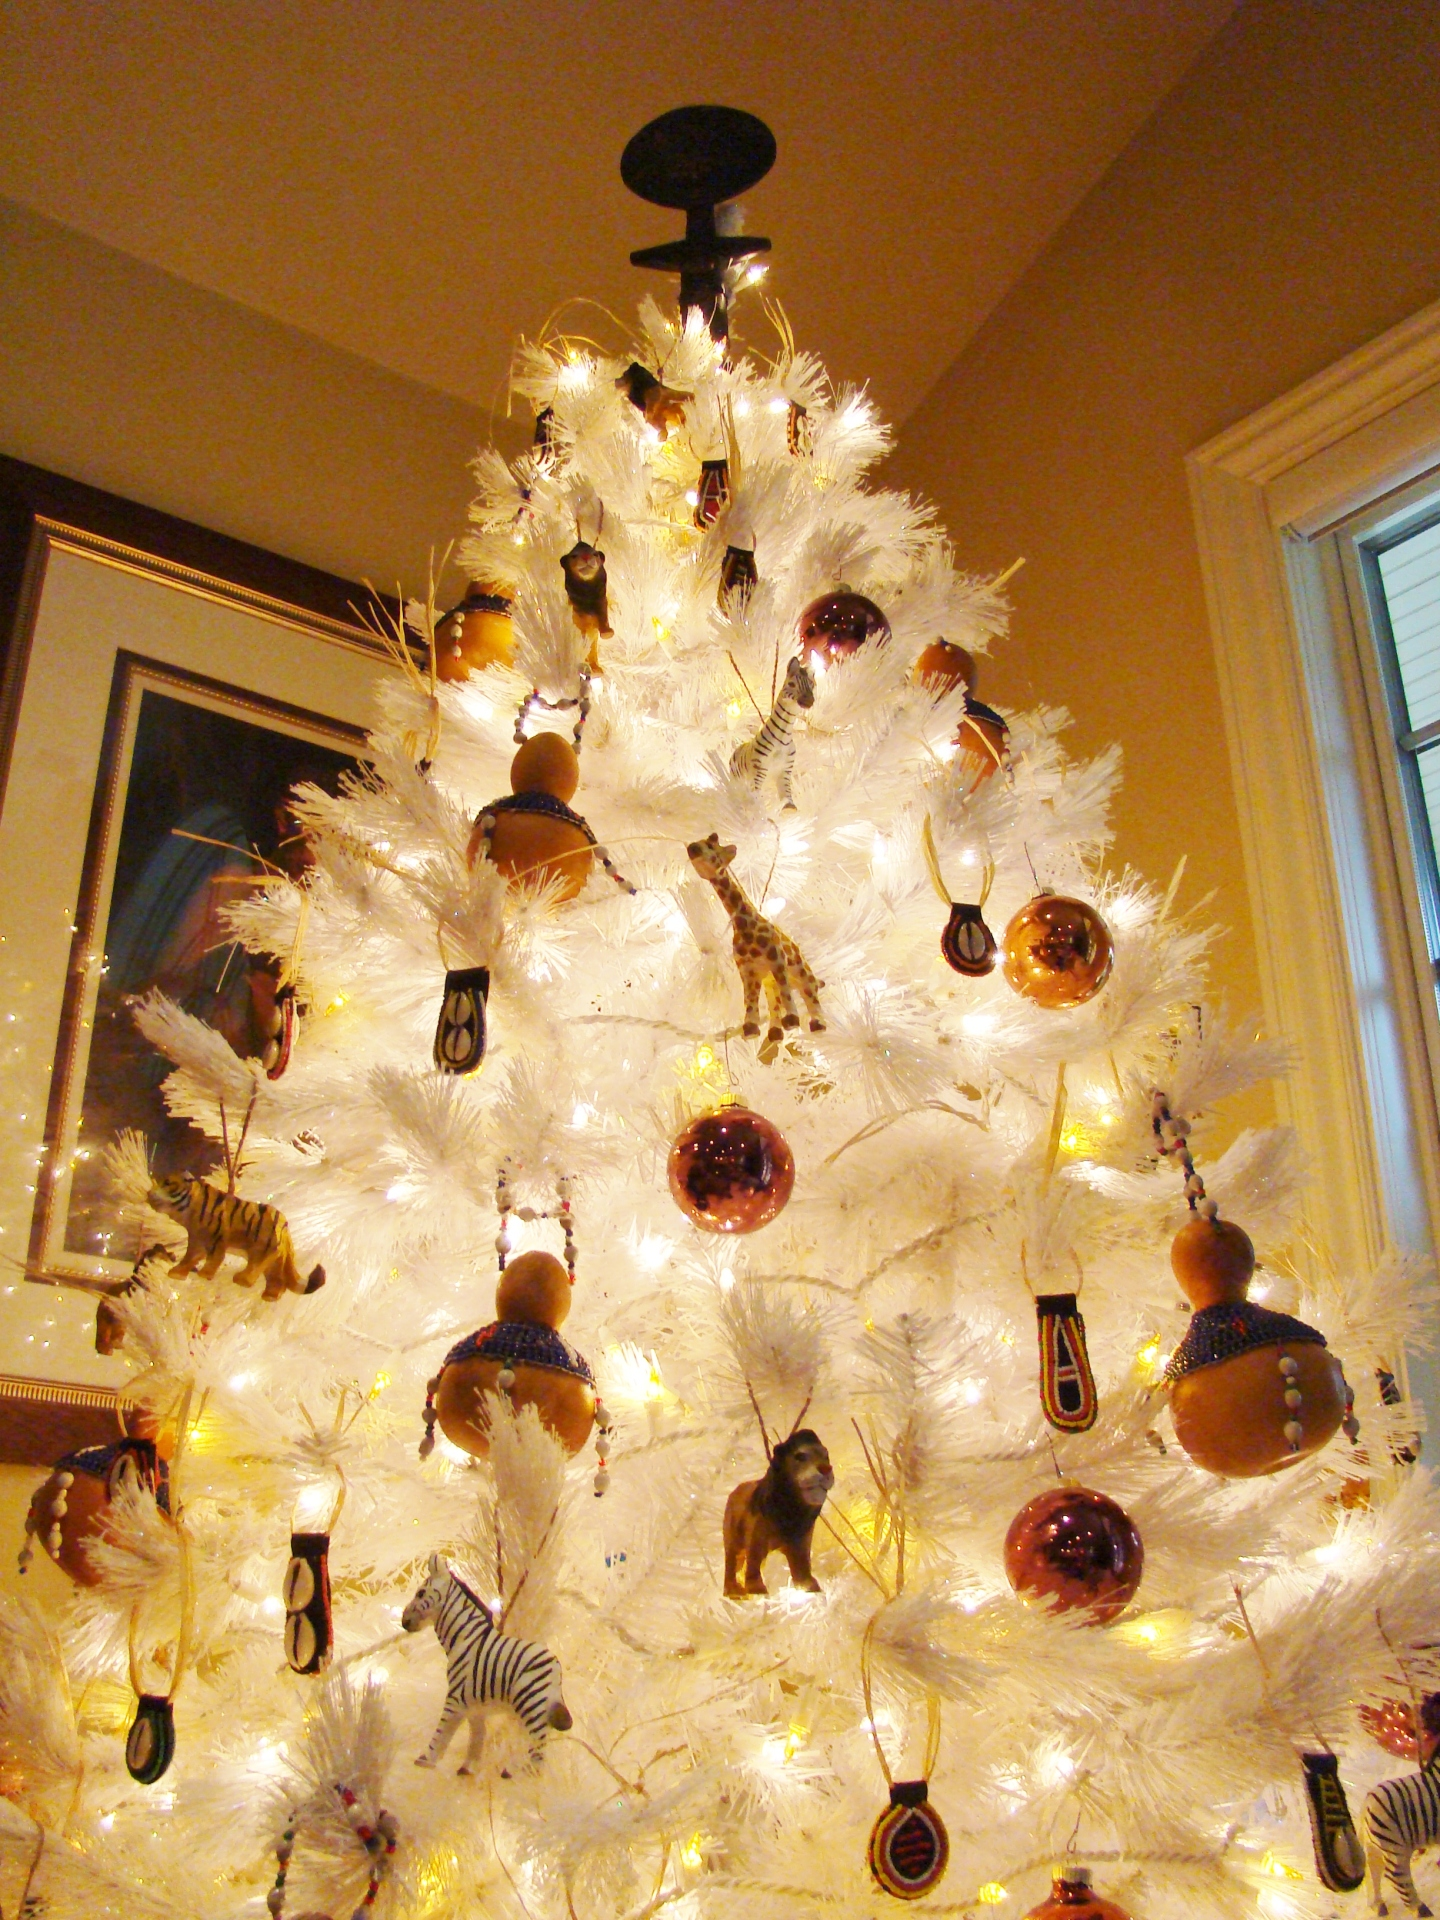 Fiorito Interior Design, interior design, Homes For The Holidays, African, holiday tree, ornaments